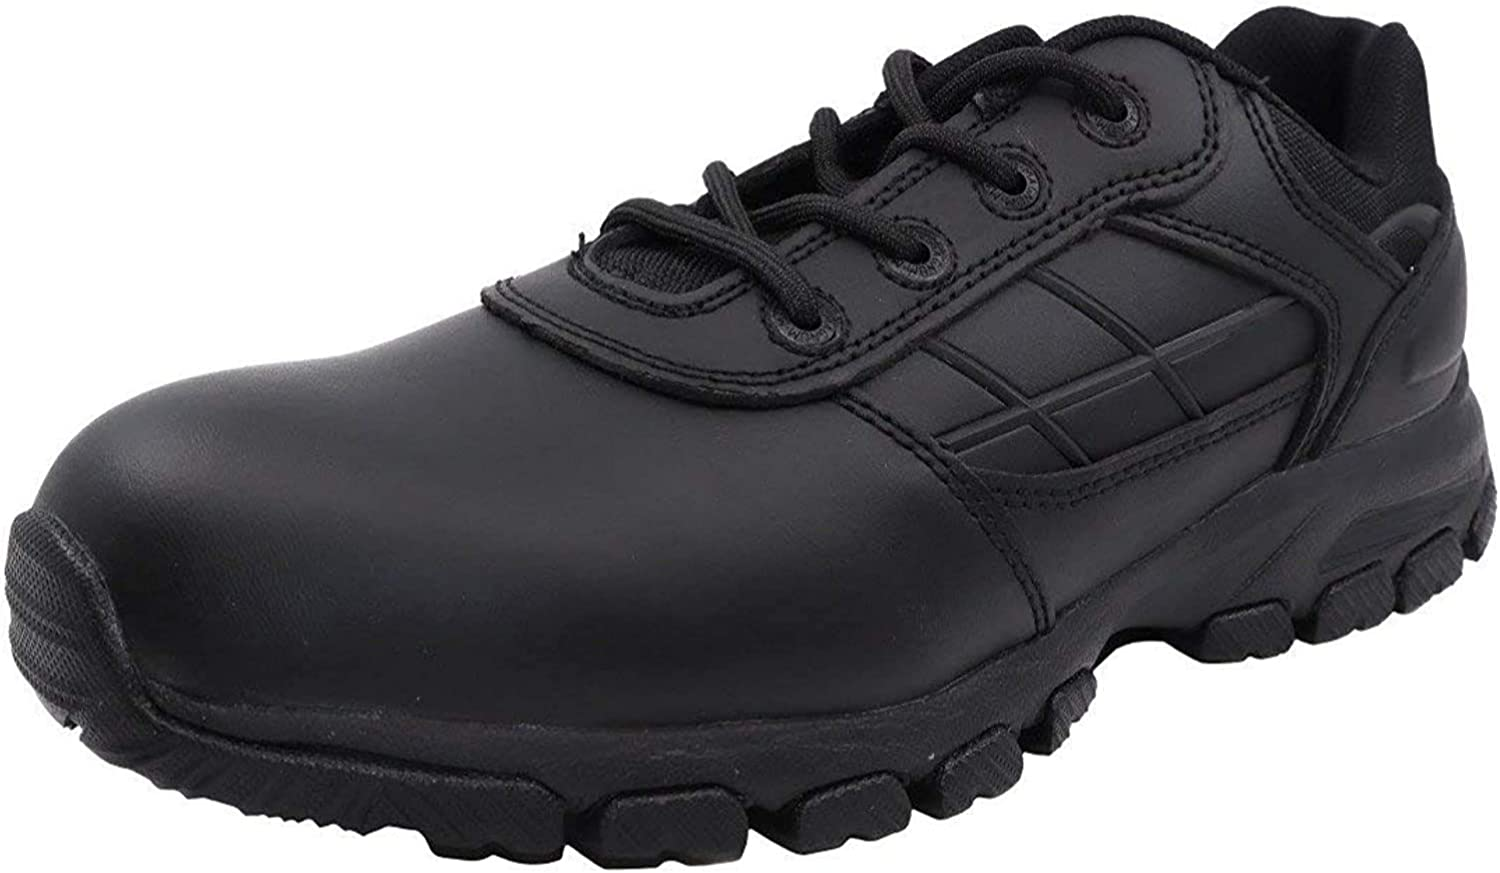 Magnum Men s Response Iii Low Ankle-High Leather Industrial Construction